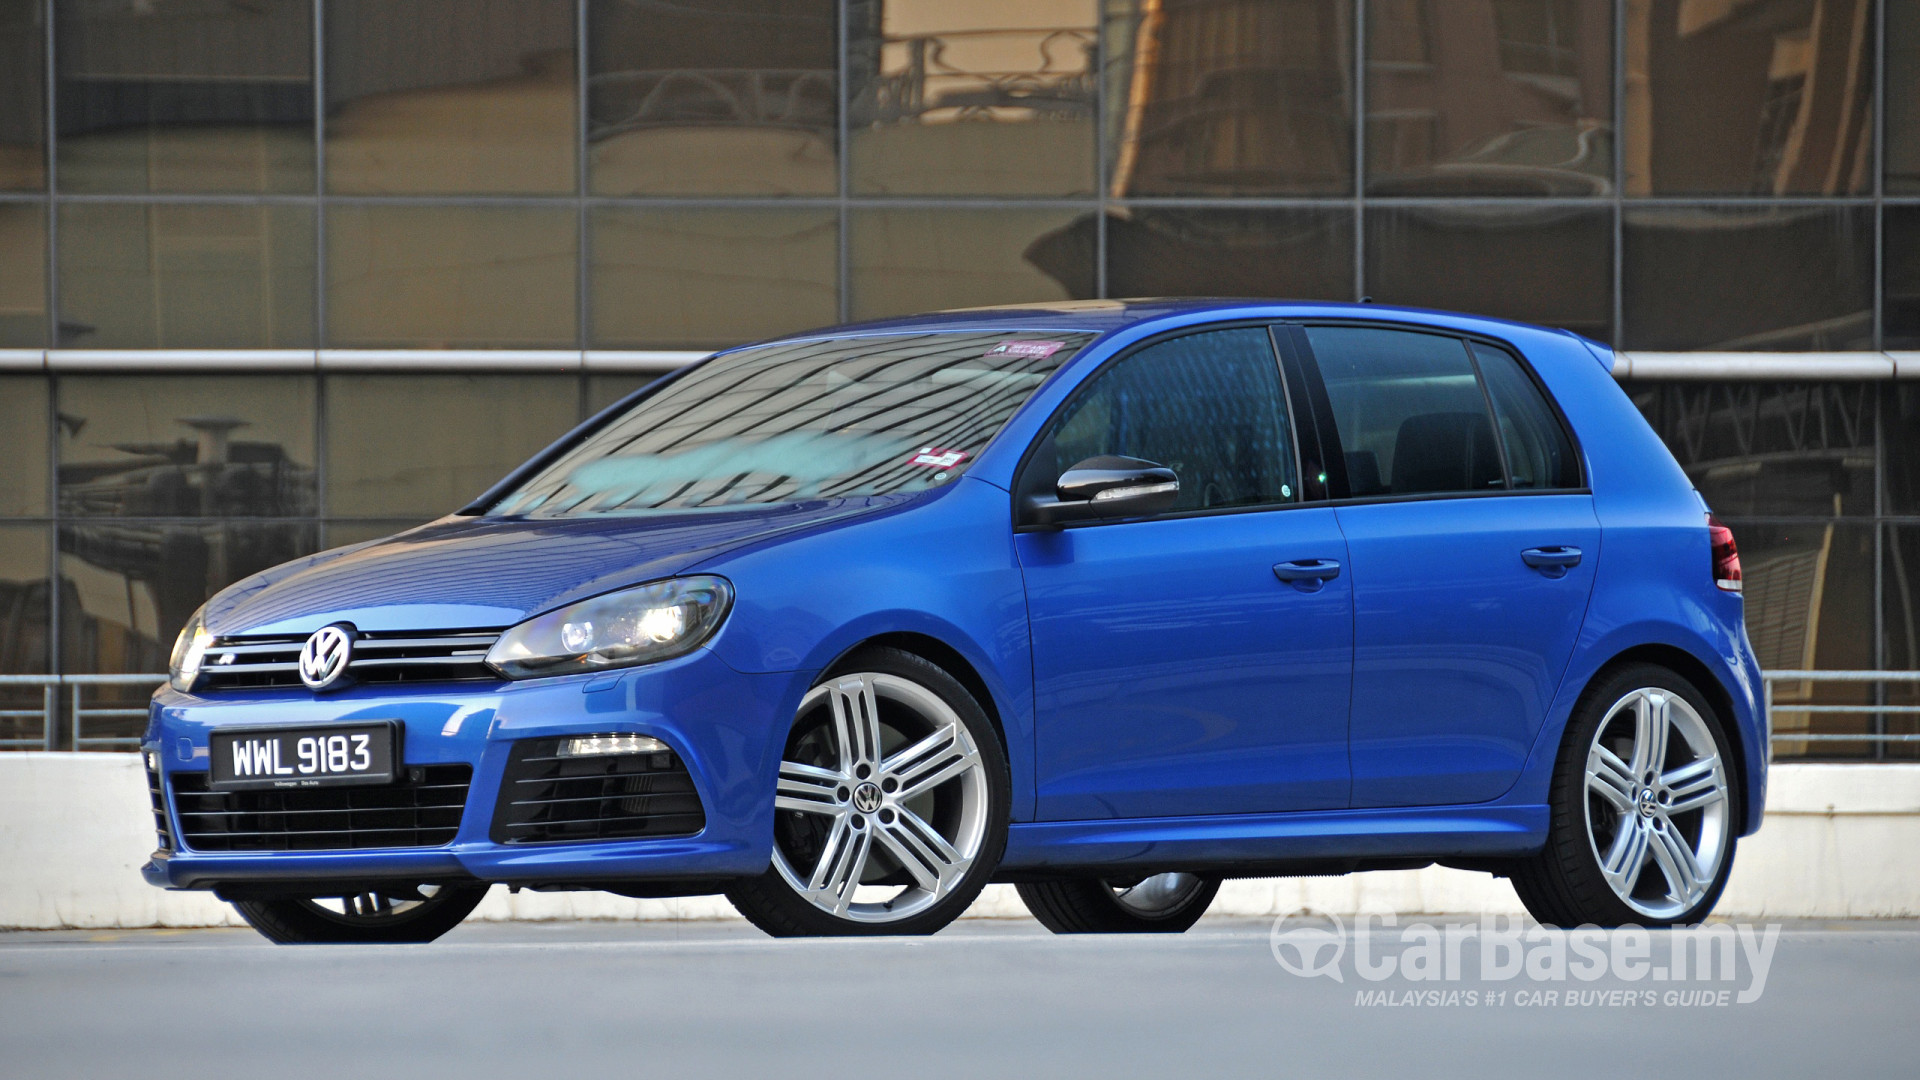 Volkswagen Golf R Mk6 R (2012) Exterior Image #9975 in Malaysia